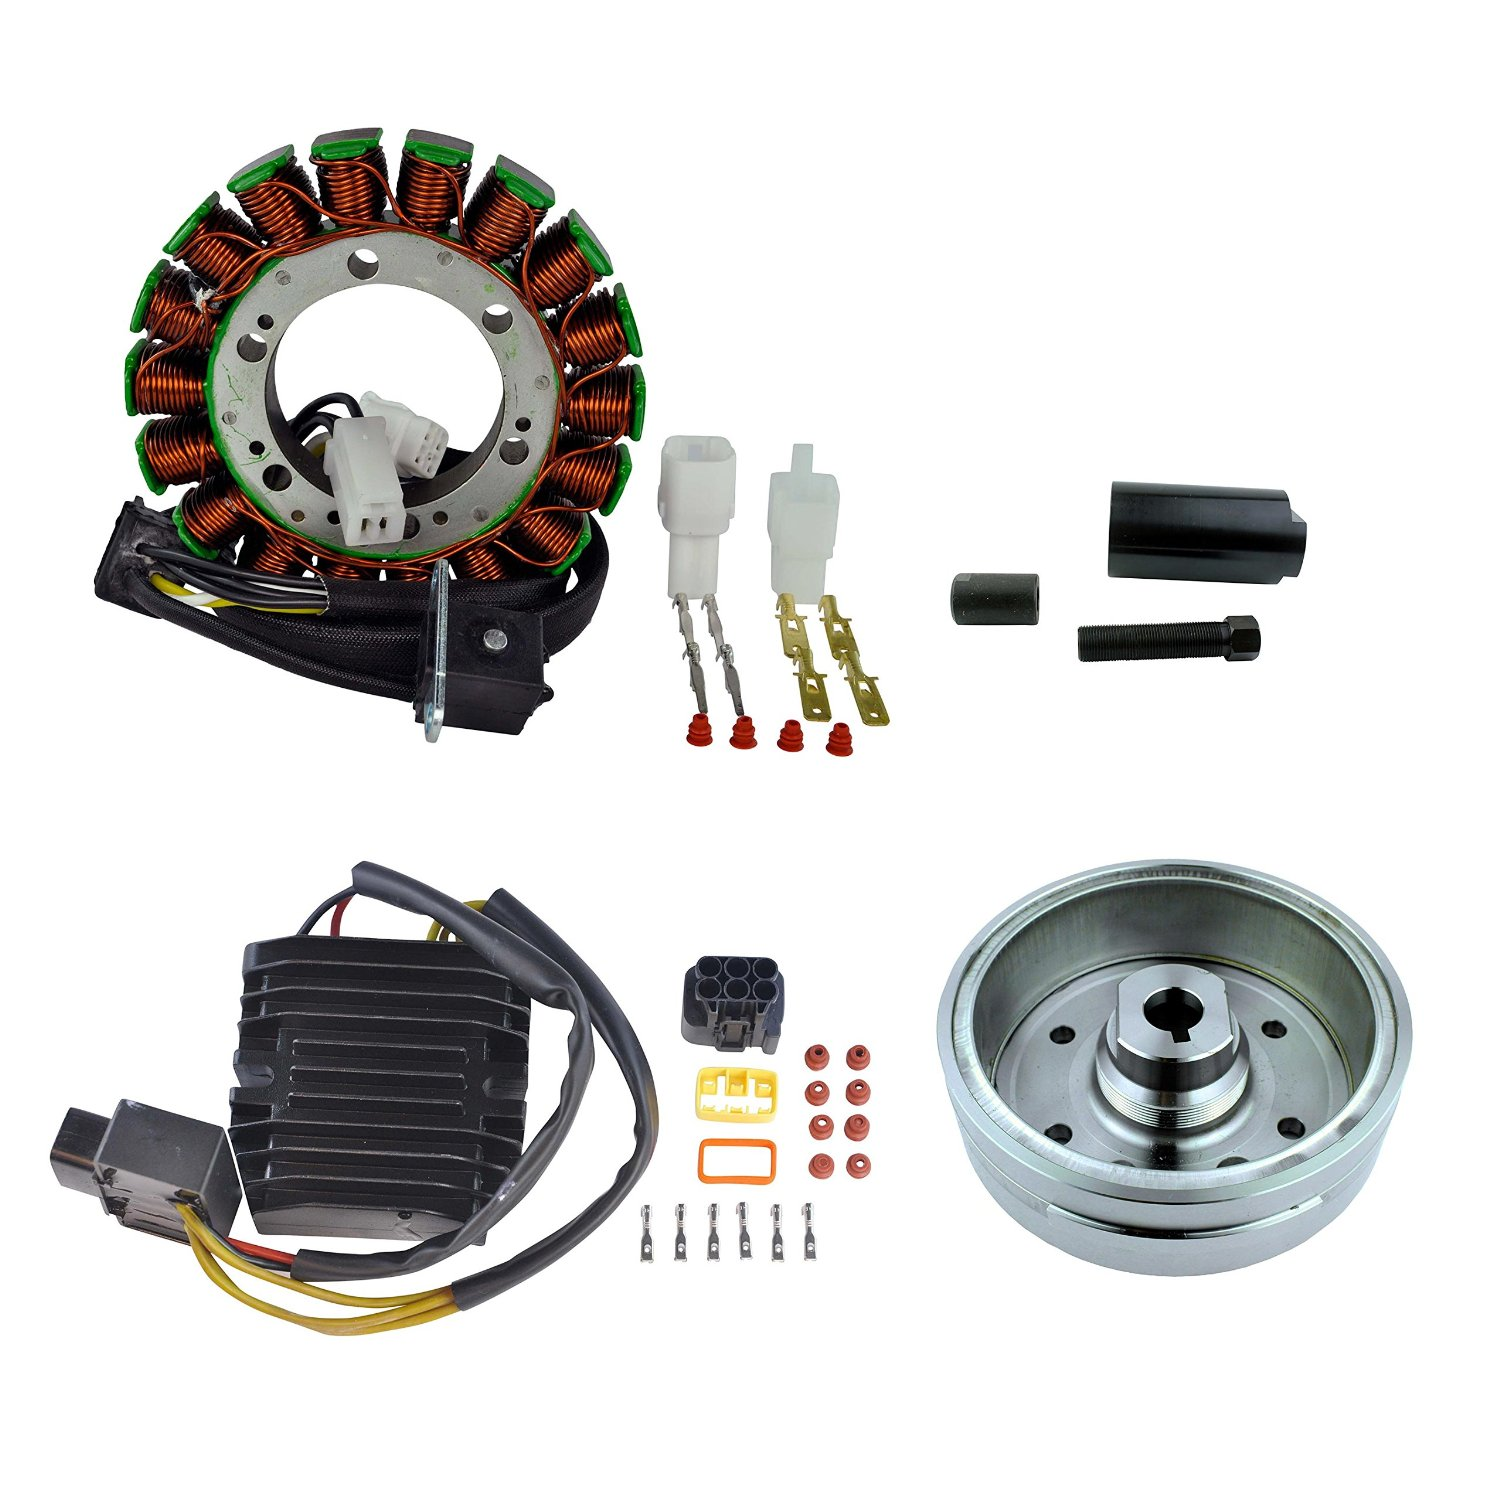 Kit Improved Flywheel + Flywheel Puller + Stator + Mosfet Voltage Regulator For Suzuki LTA/LTF 400 Eiger 2002 2003 2004 2005 2006 2007